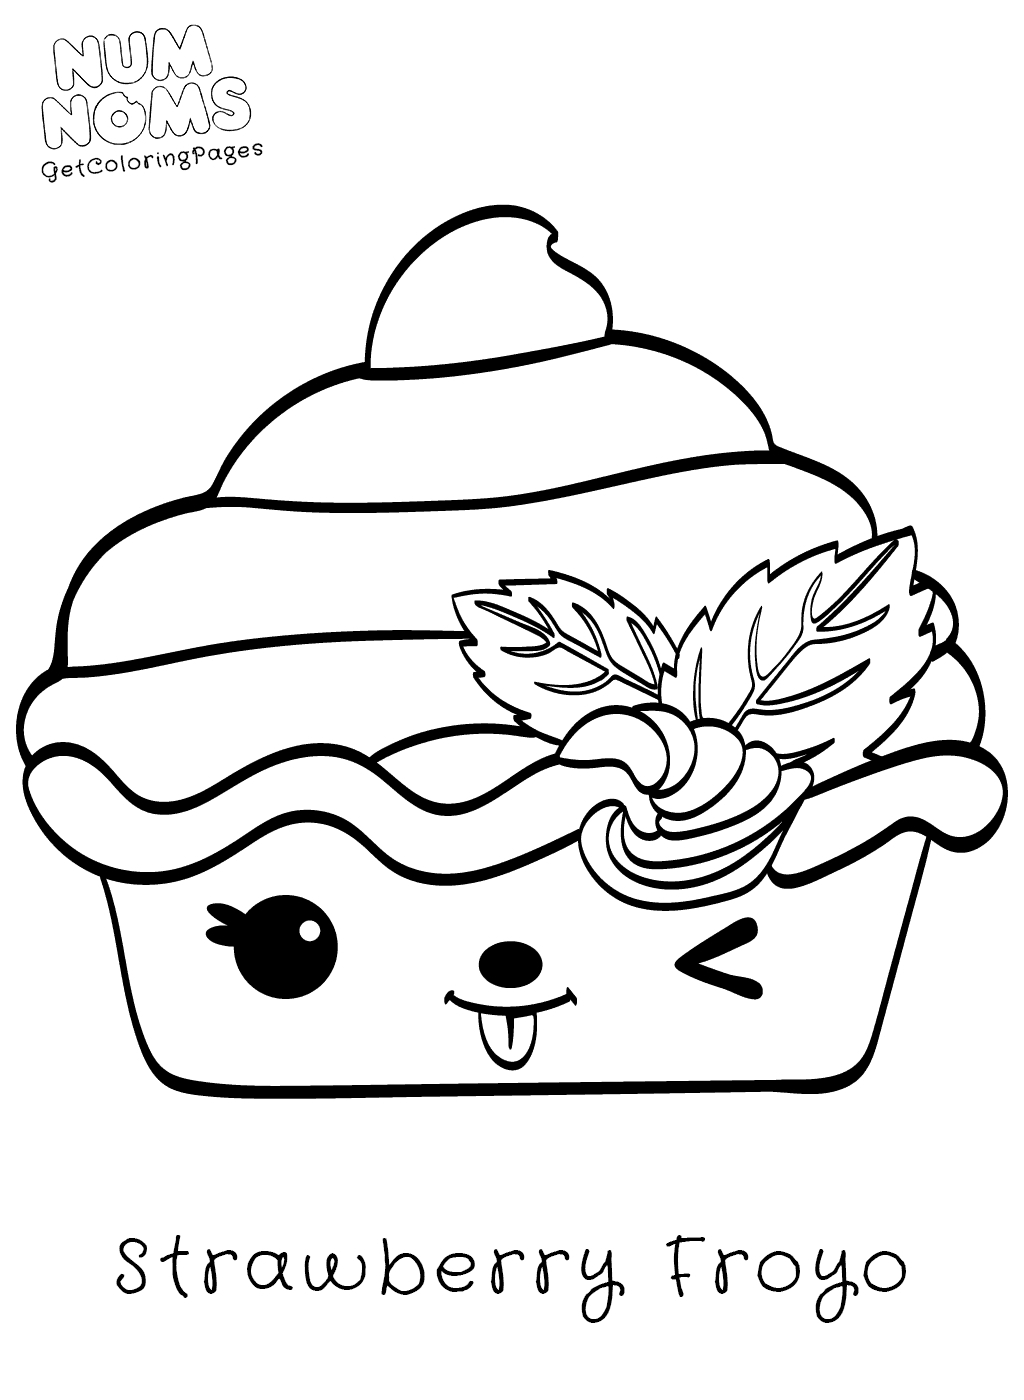 1024x1400 Best No Nom Coloring Pages Design Great Collection